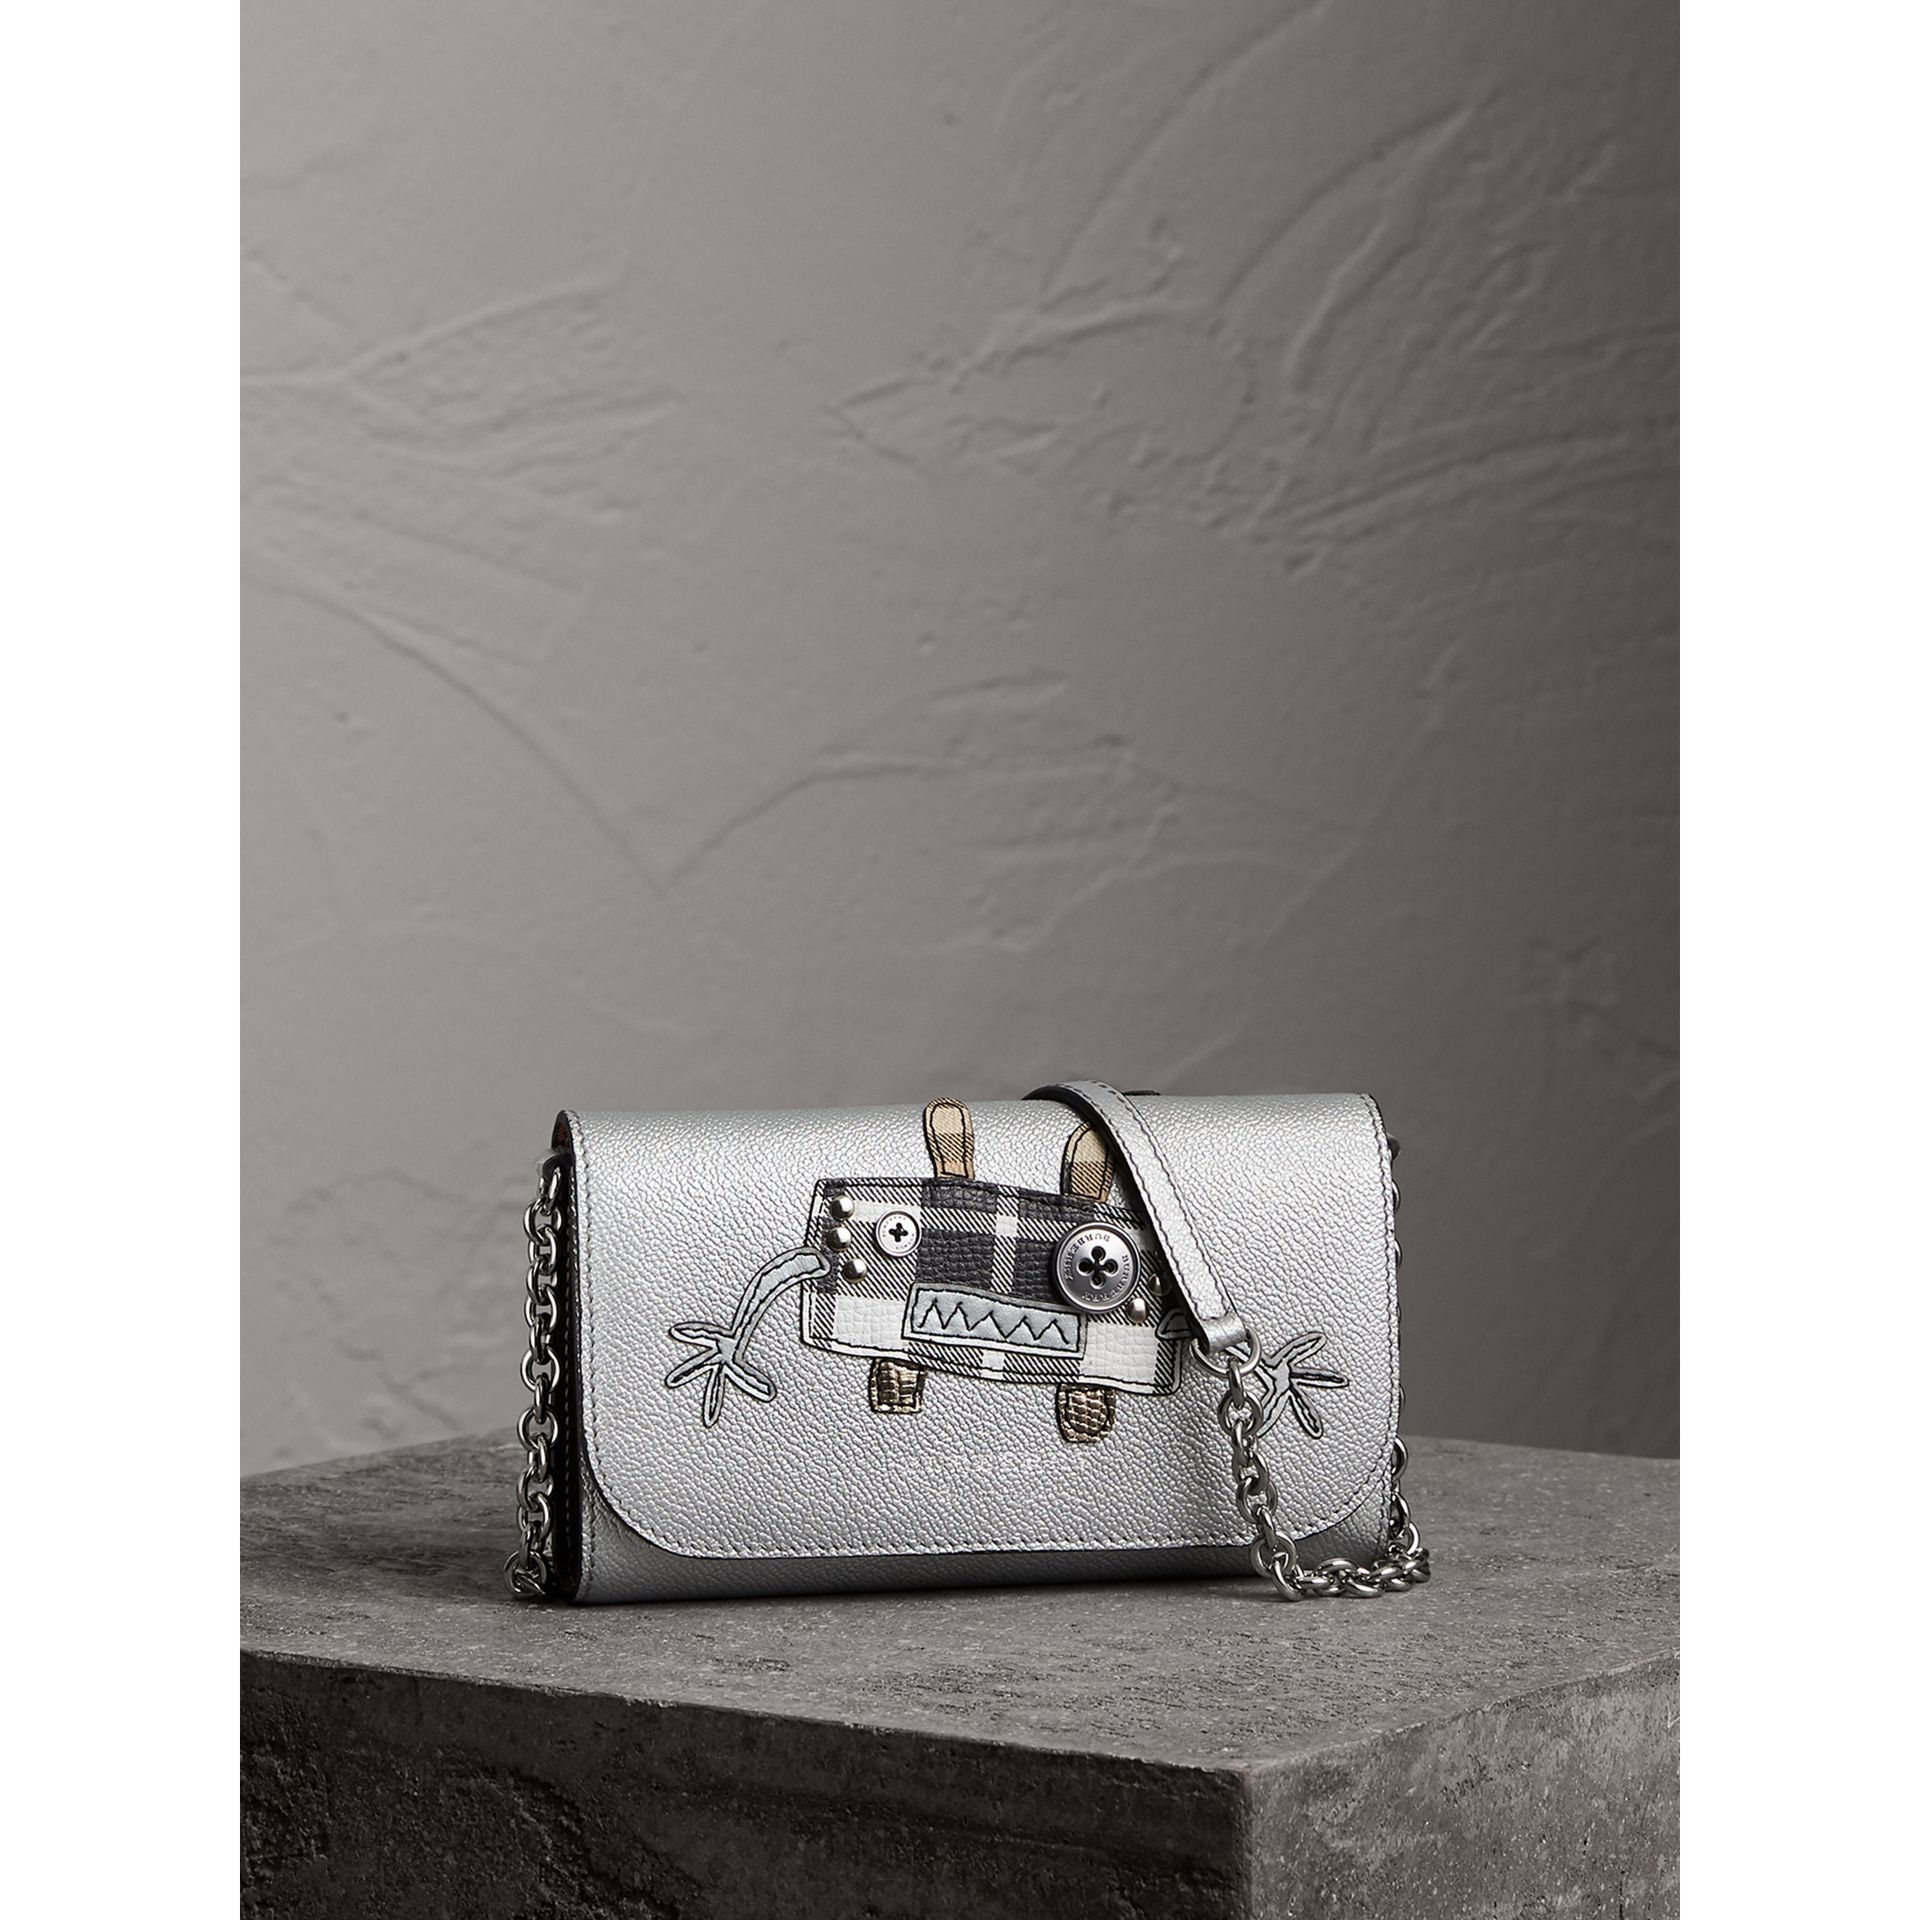 Creature Appliqué Metallic Leather Wallet with Chain in Silver/multicolour - Women | Burberry - gallery image 1